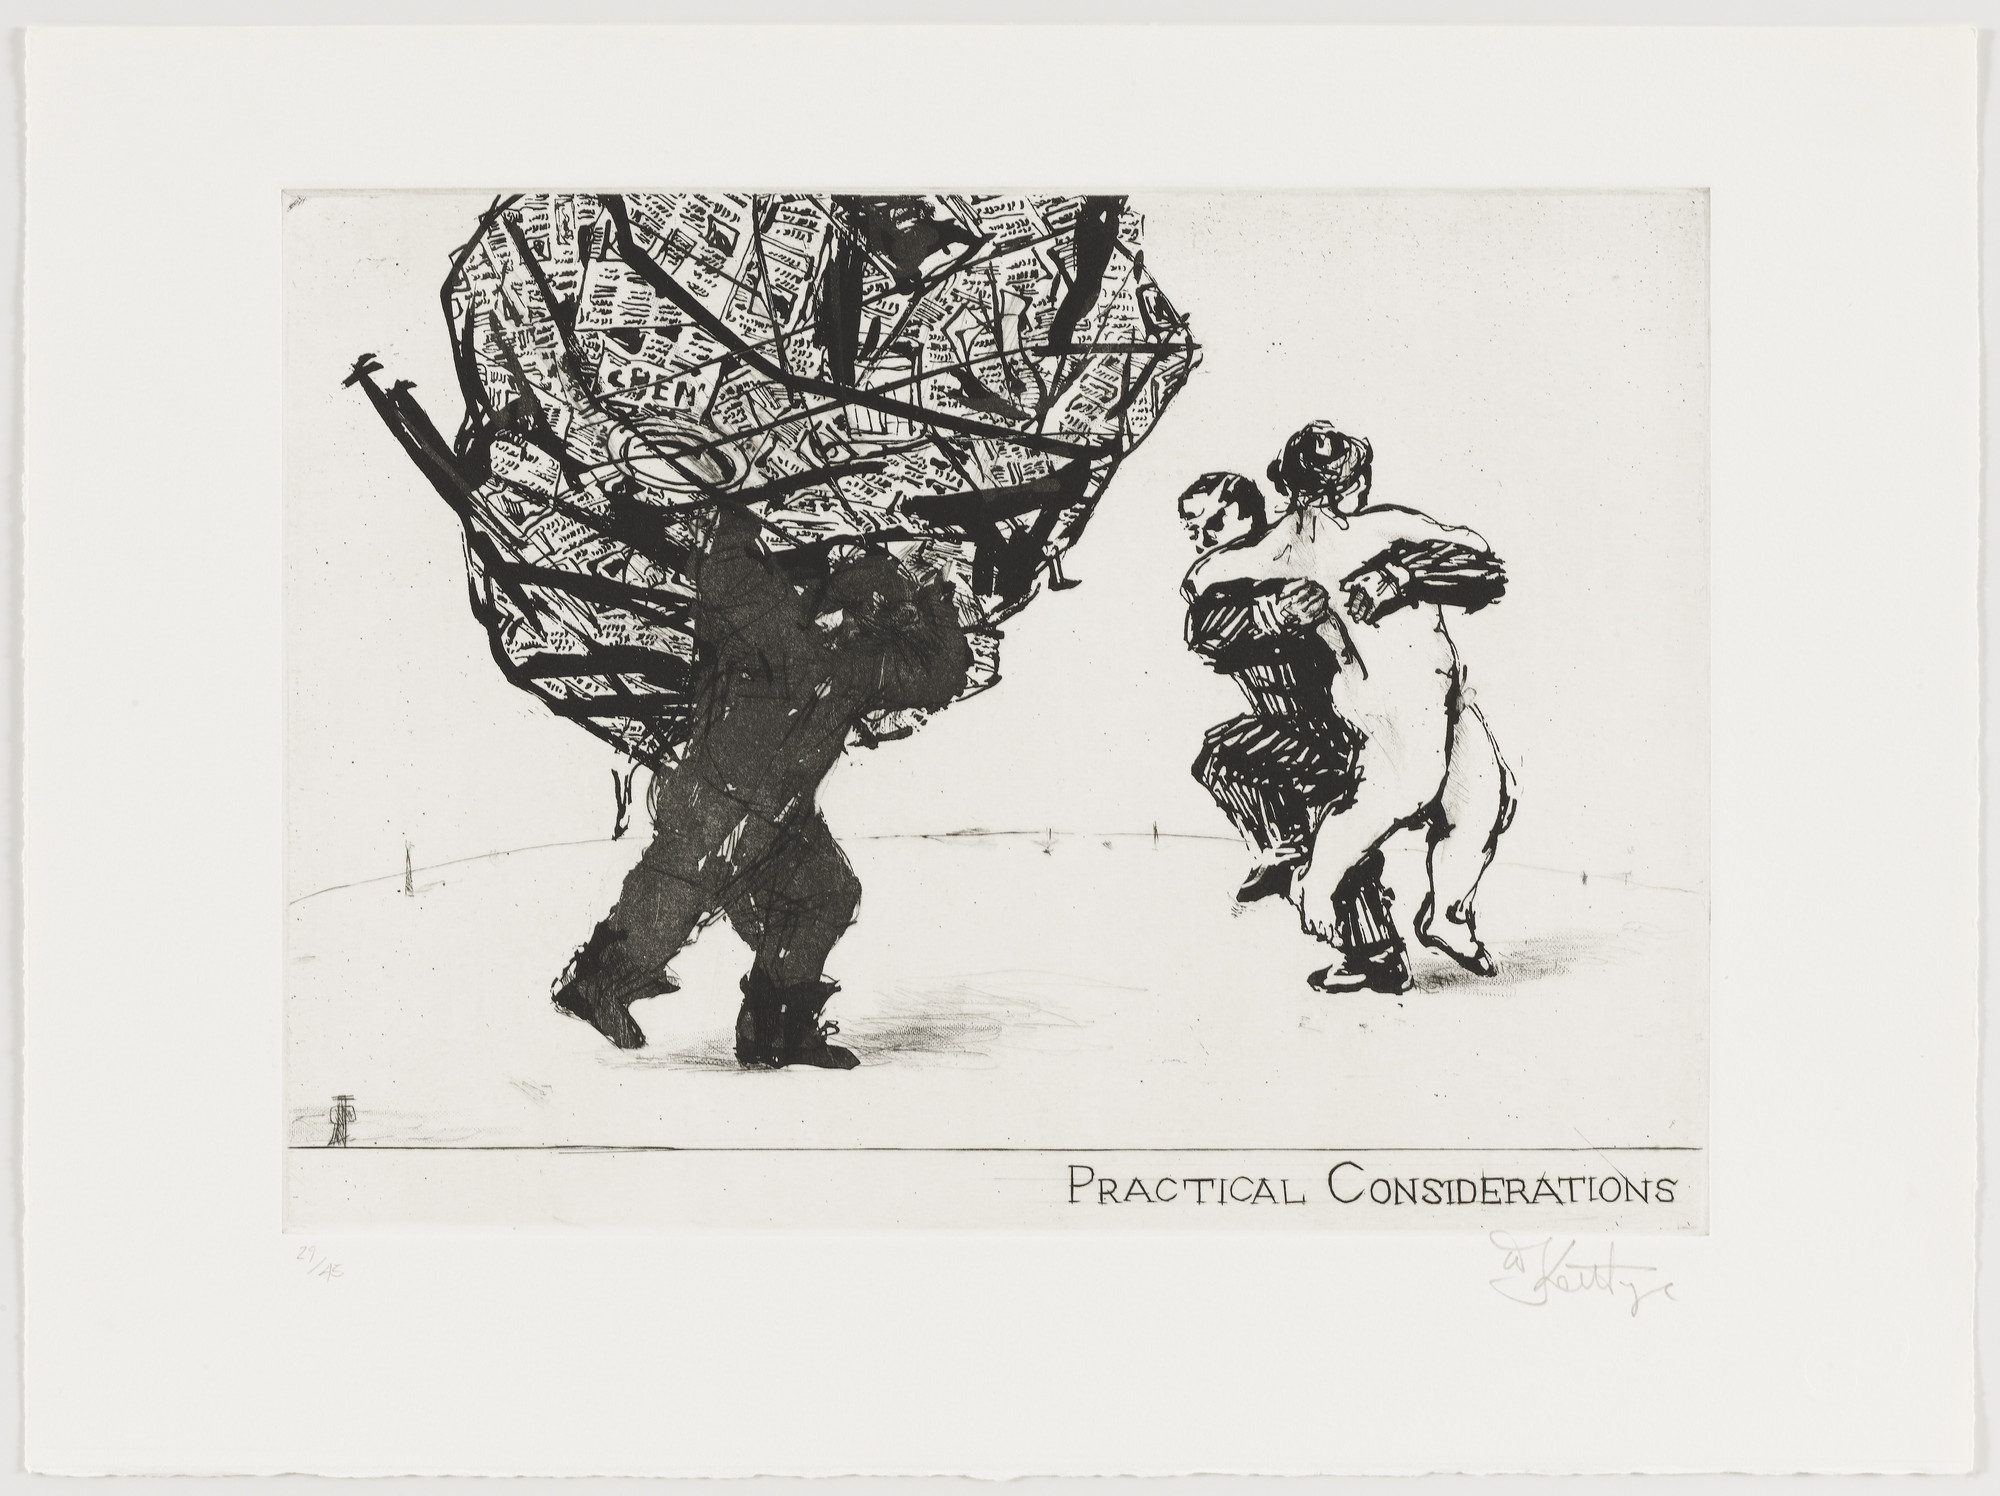 William Kentridge. Practical Considerations from Little Morals. 1991